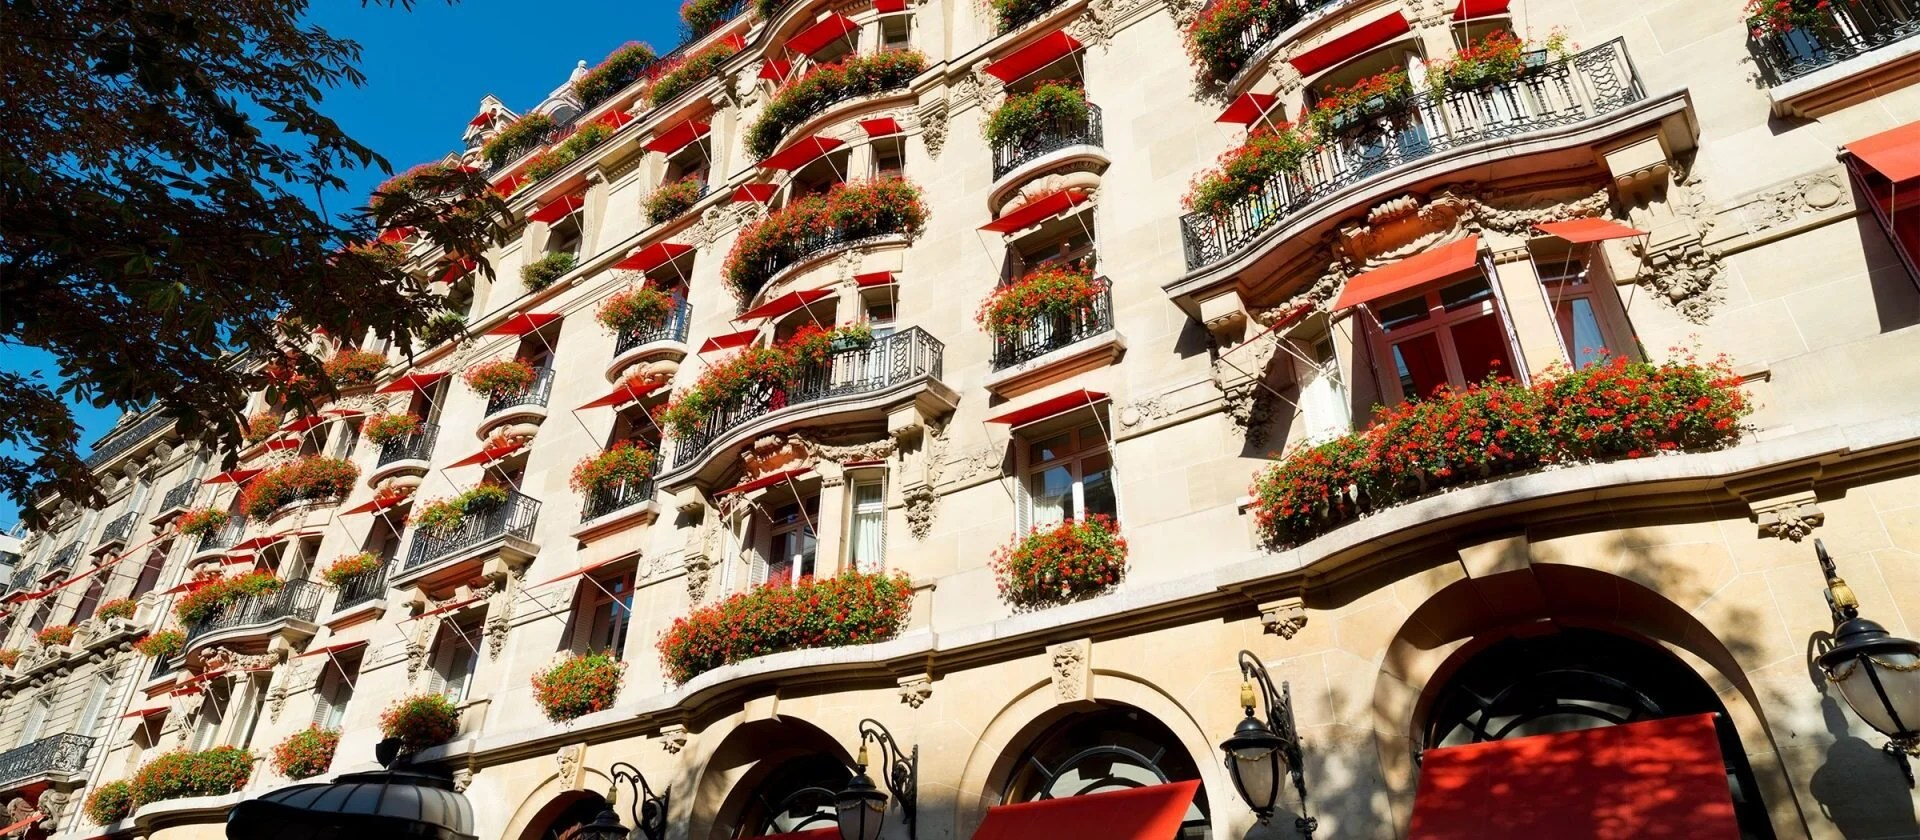 Location Parking Paris 16 Hotel Plaza Athénée 5 Star Luxury Hotel Dorchester Collection